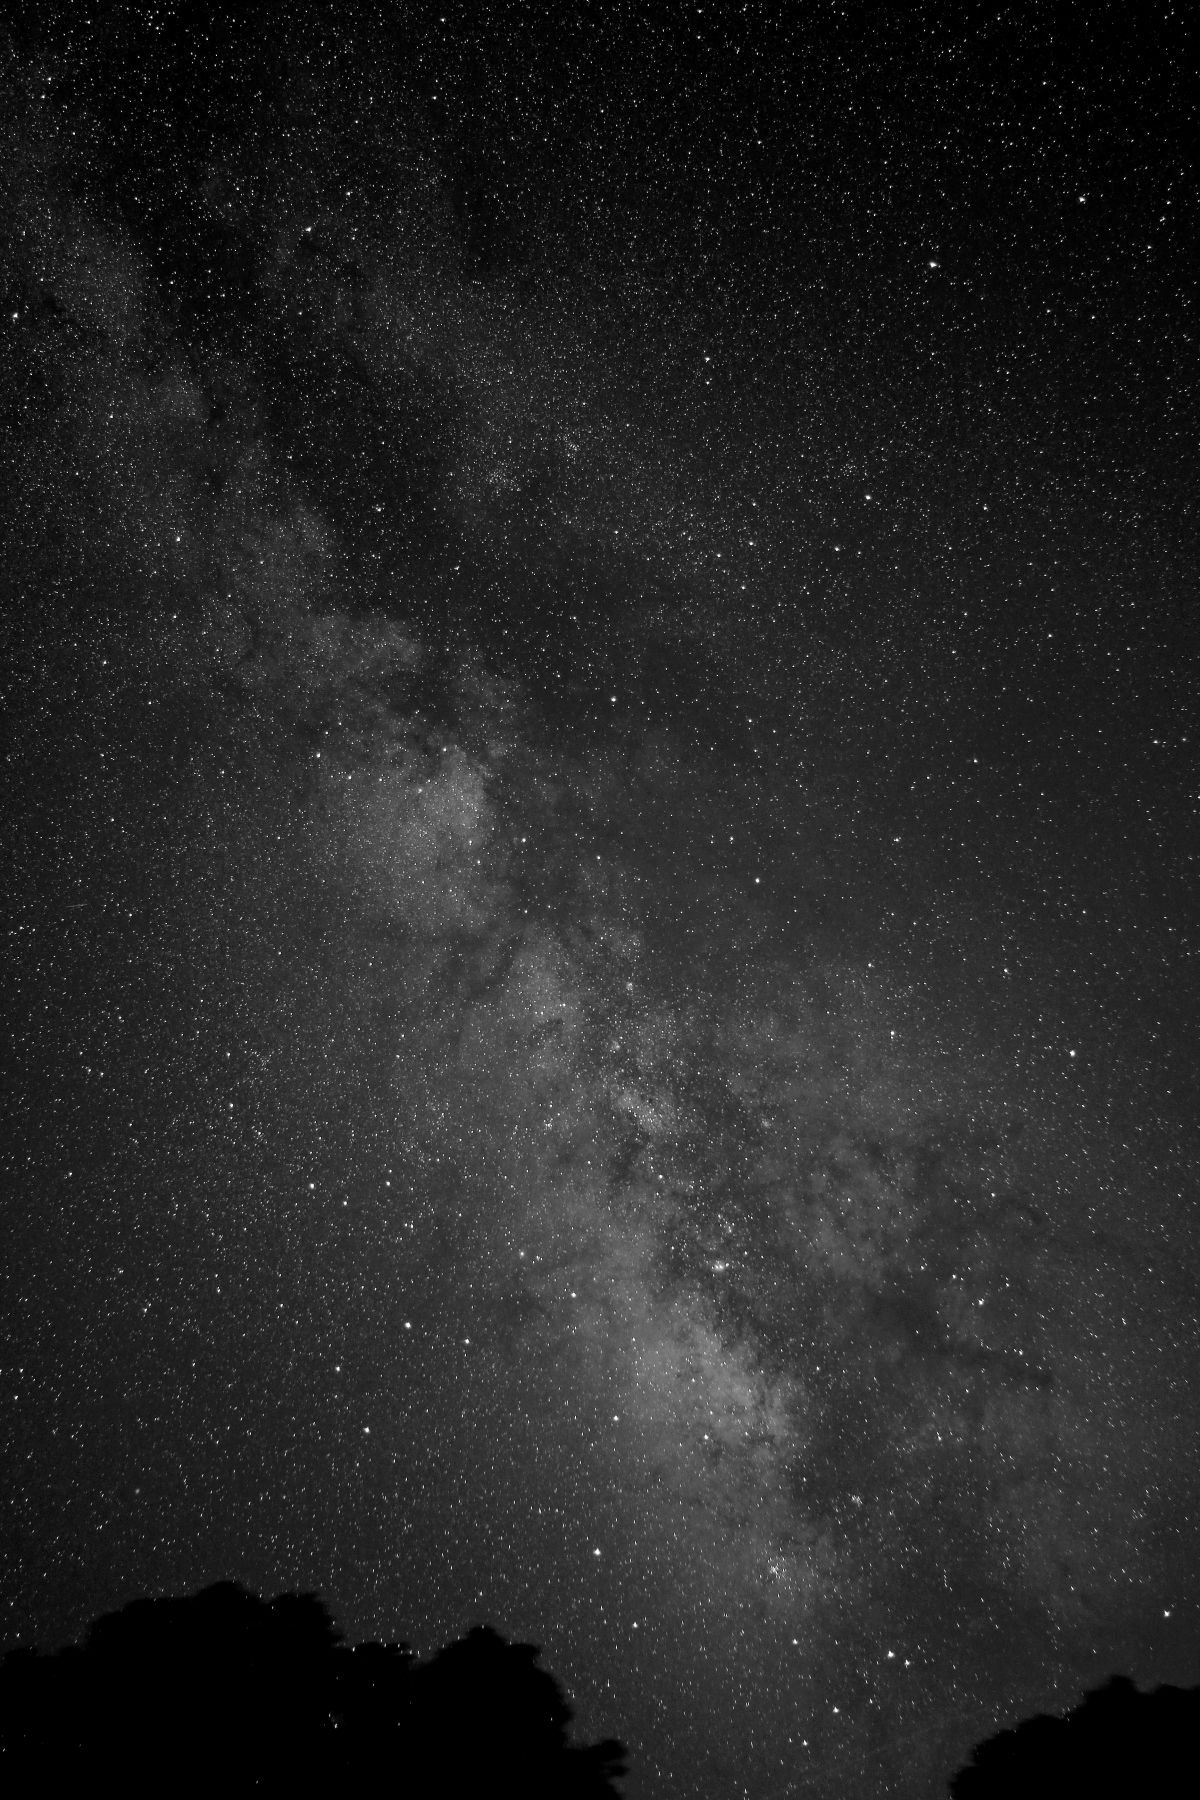 Milky Way Glows in Beautiful Black-and-White Photo | Space